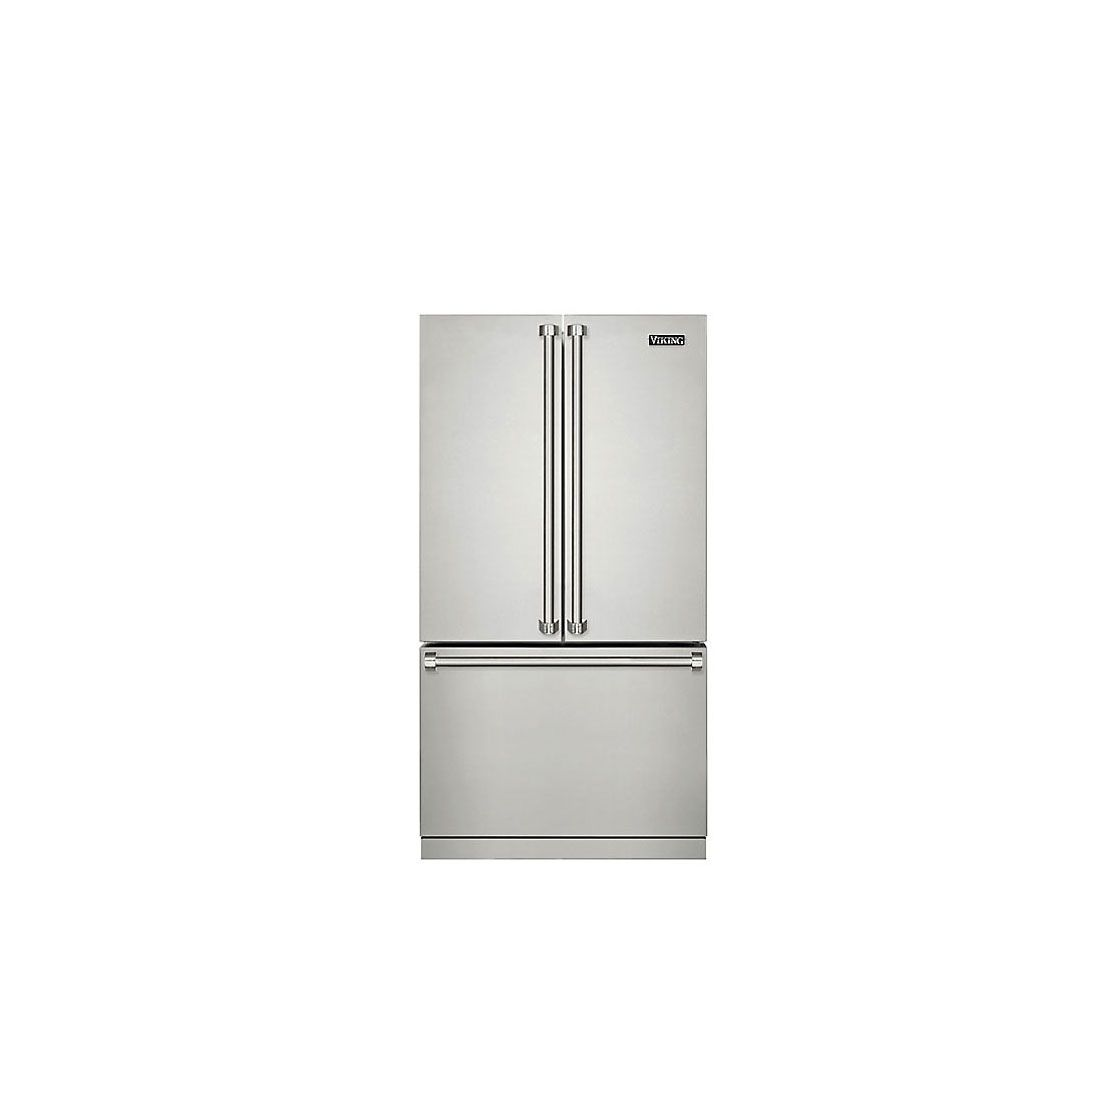 Viking 36 French Door Bottom Freezer Rurf336ss5 Review Price And Features Pros Cons Of